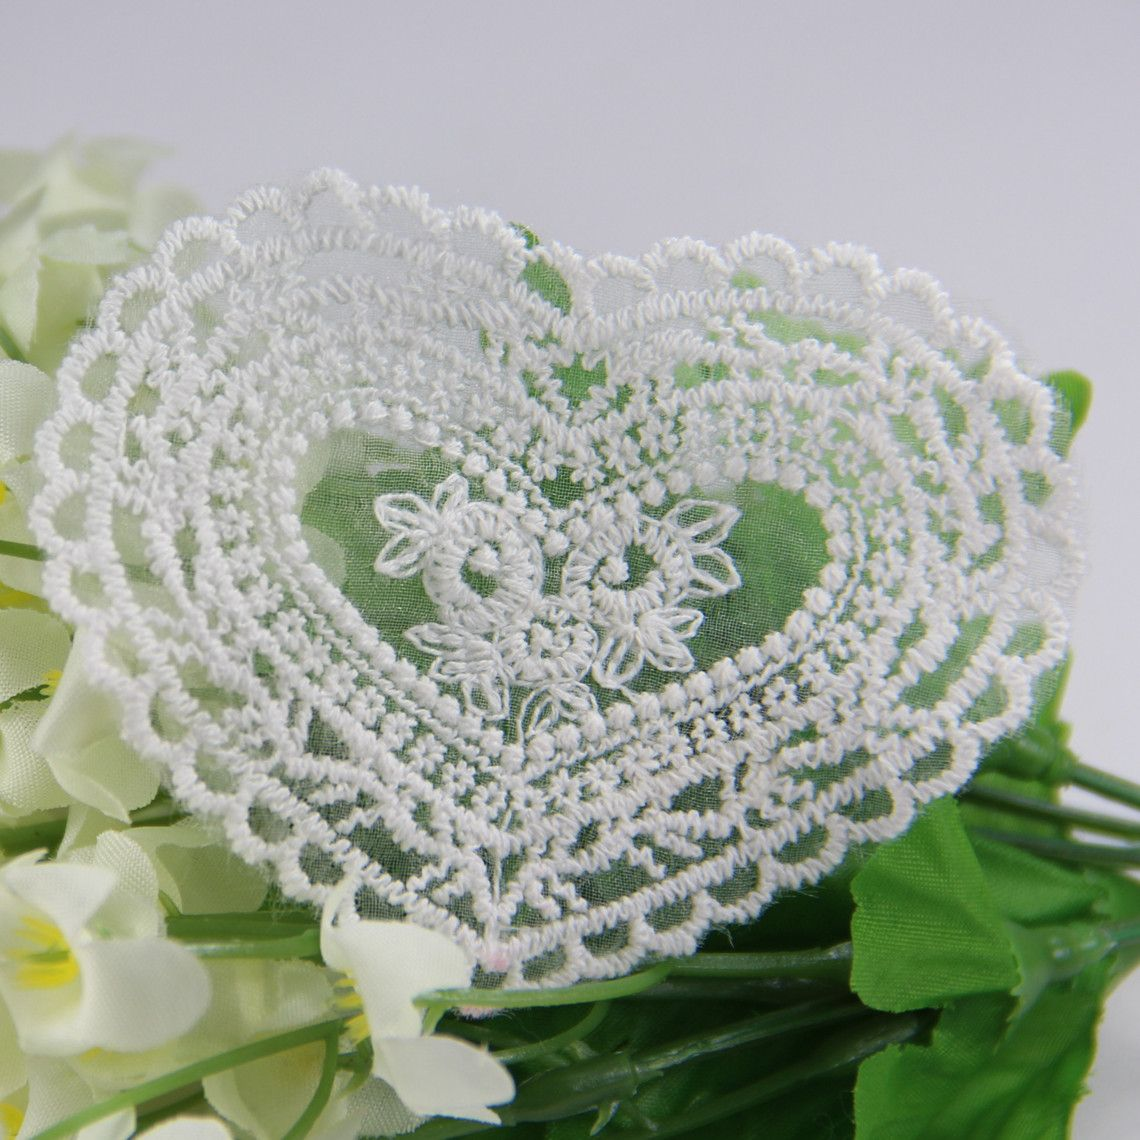 $12.5 for  20 PCS Free Shipping LA092 Handmade DIY Cotton Lace Embroidery Craft Sewing Trim Heart Appliques on DIY Lace Garden ( Min. Order US$10 ). $12.50